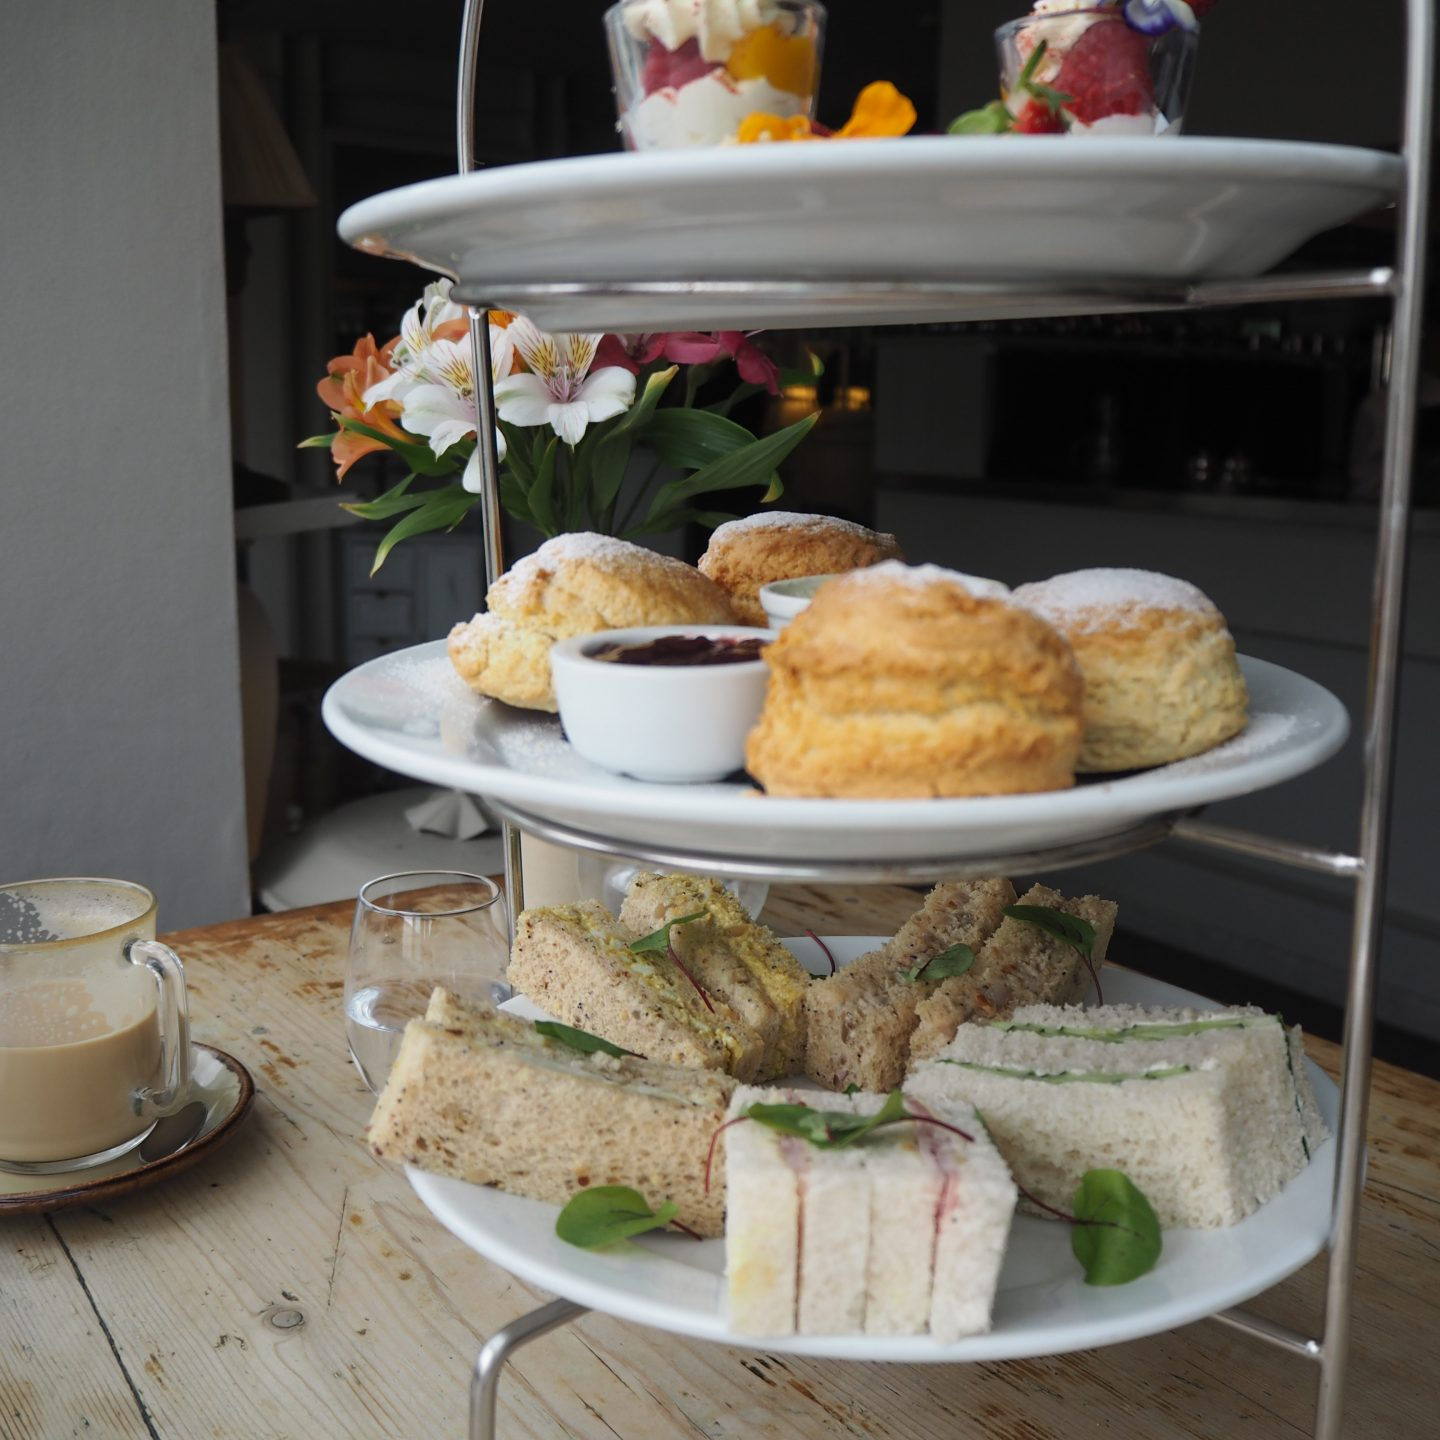 Afternoon Tea at The Folly Oxford